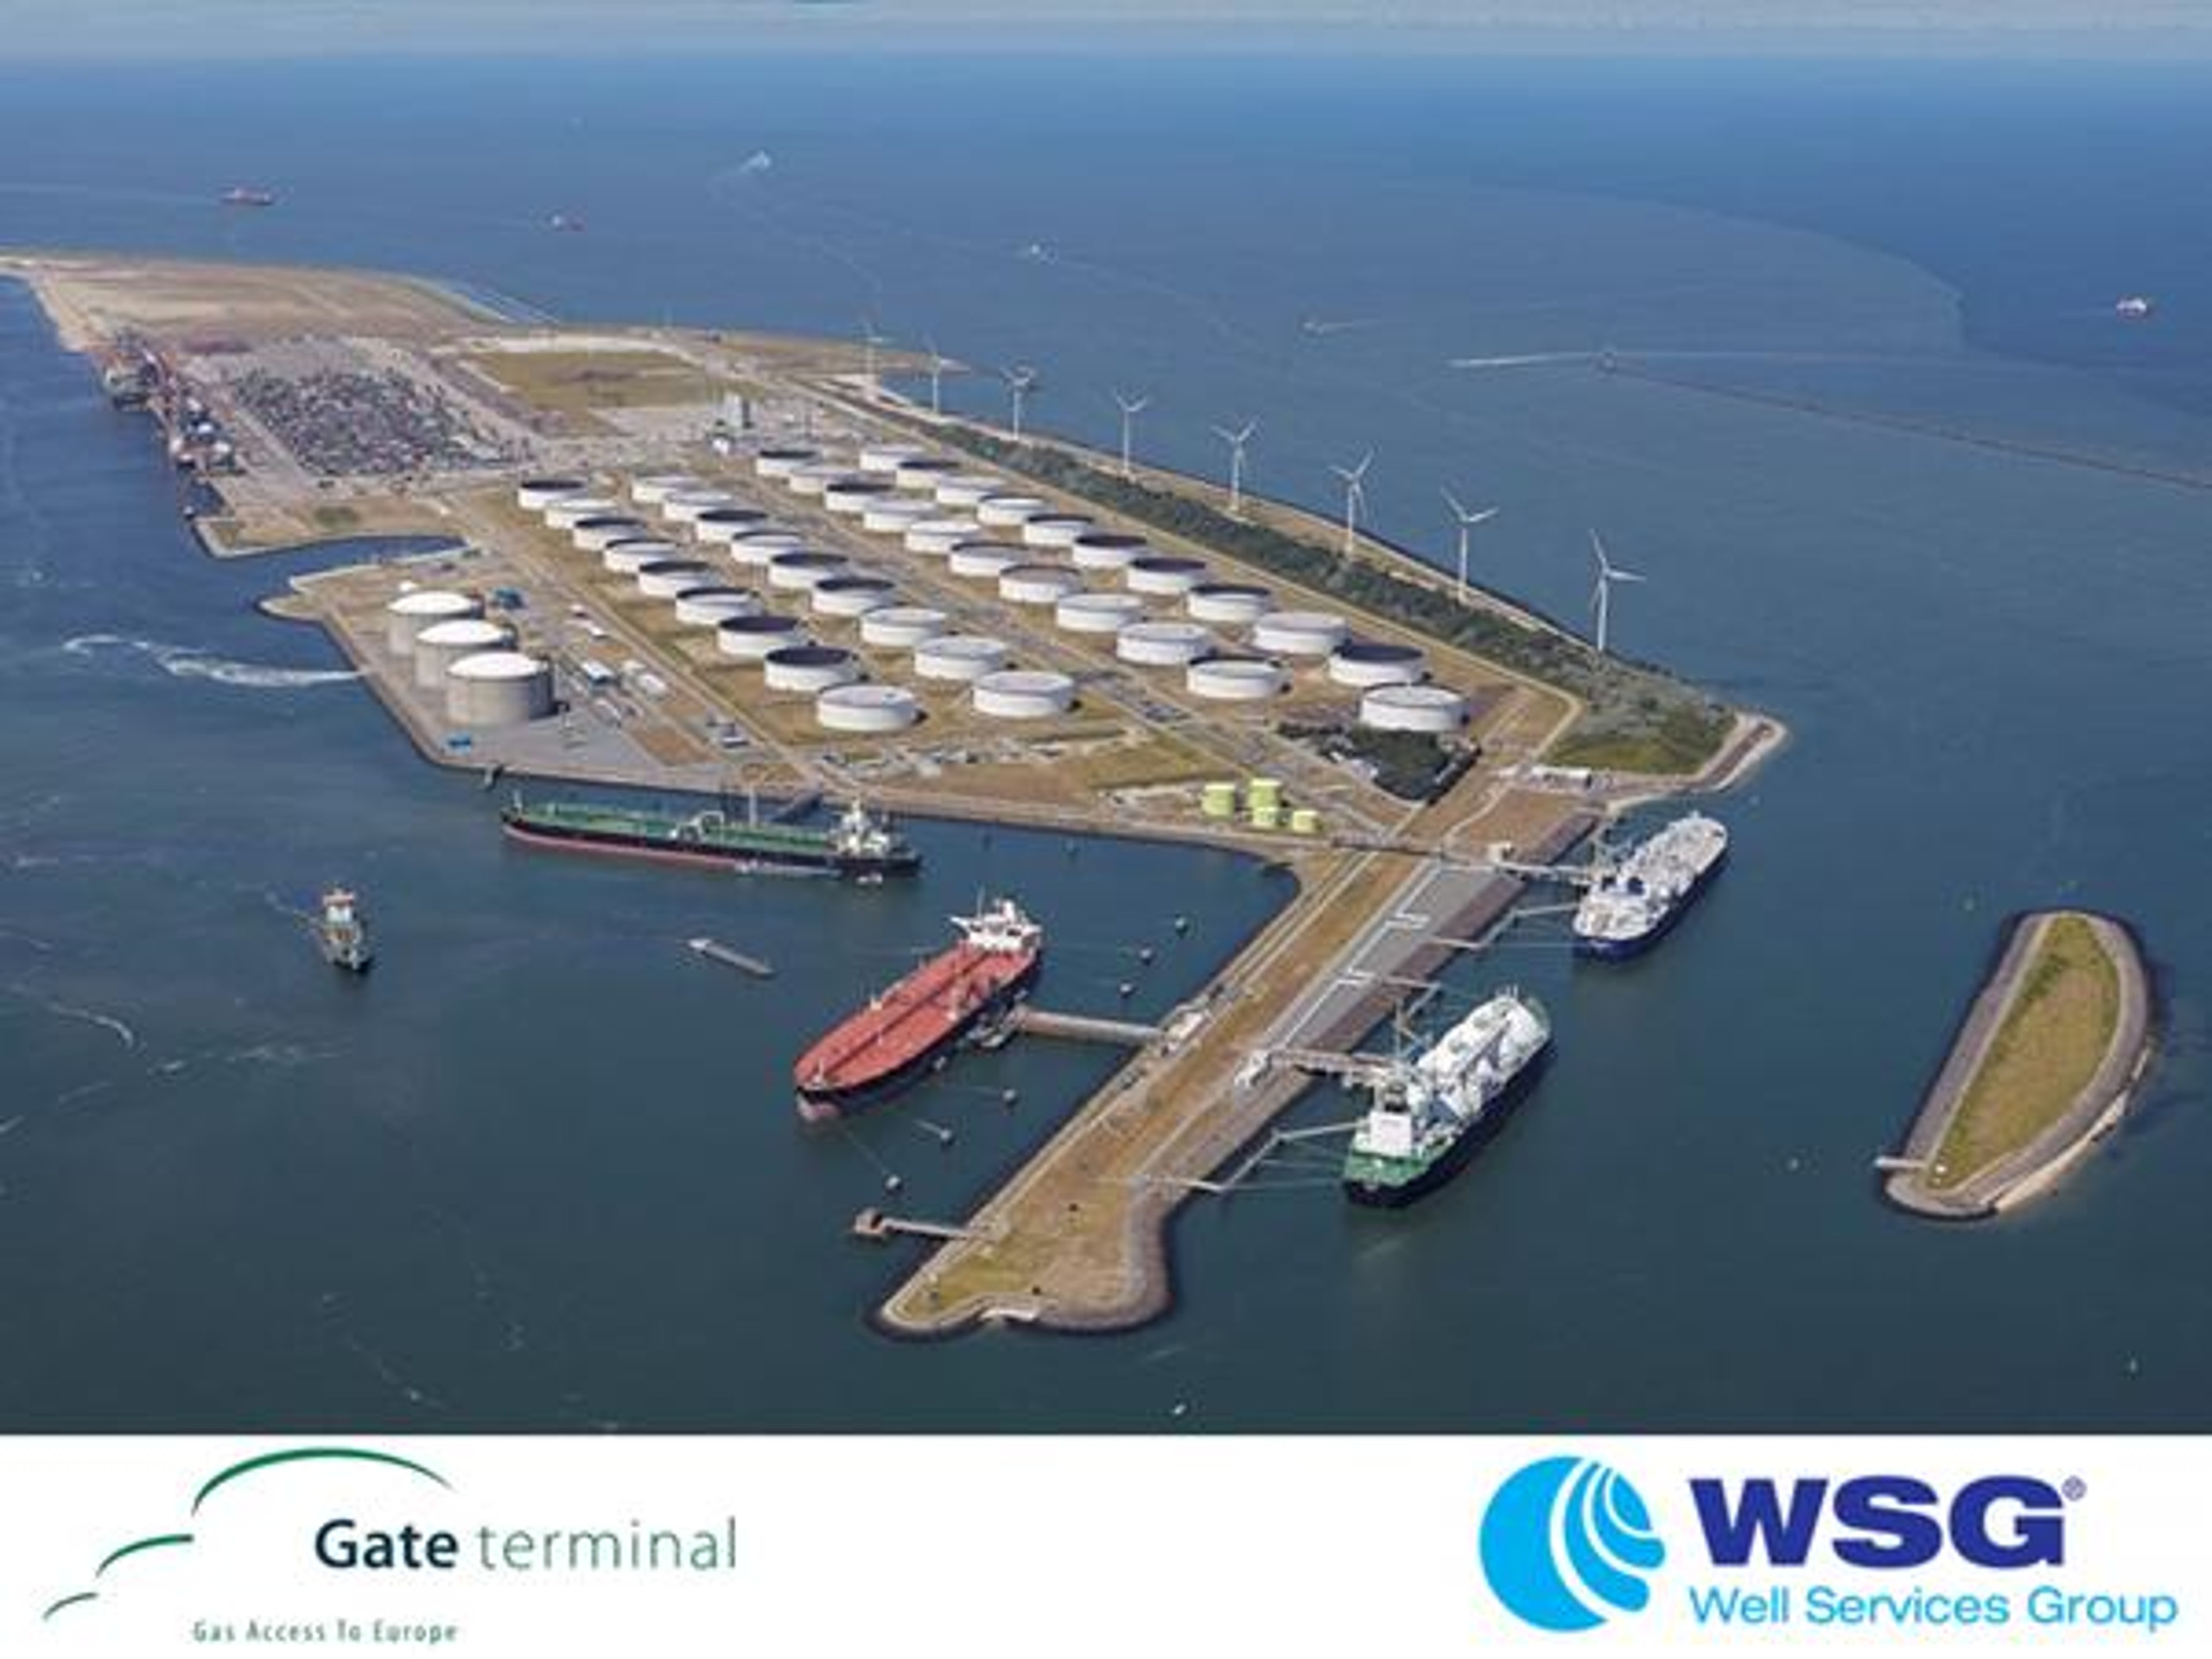 WSG signs service contract with Gate terminal B.V.